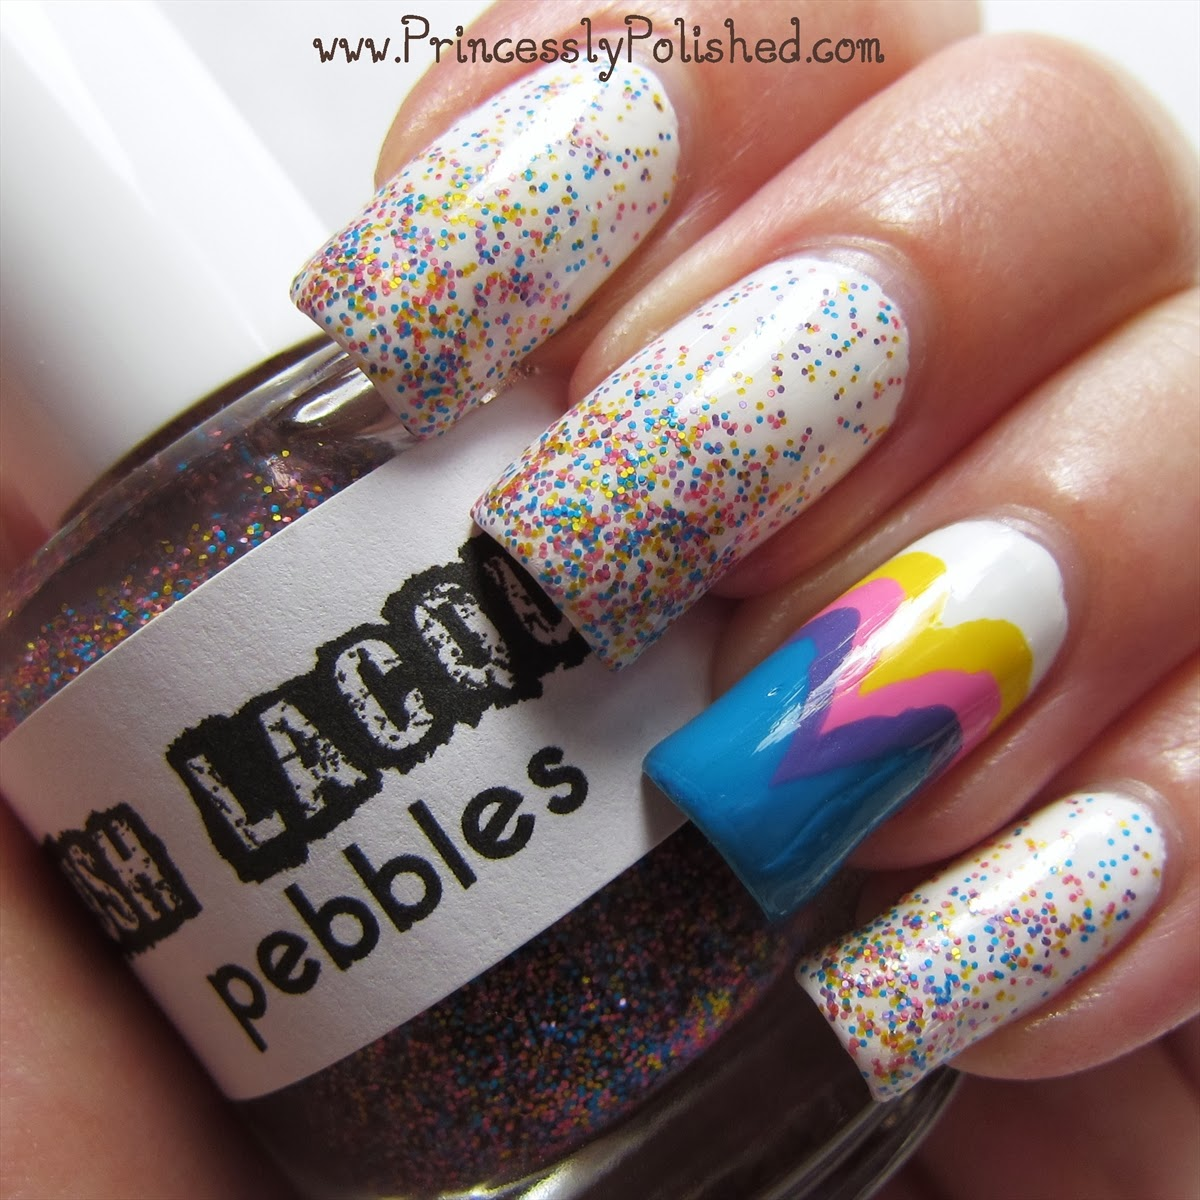 Princessly Polished: Lush Lacquer: Pebbles with Fishtail Accent ...